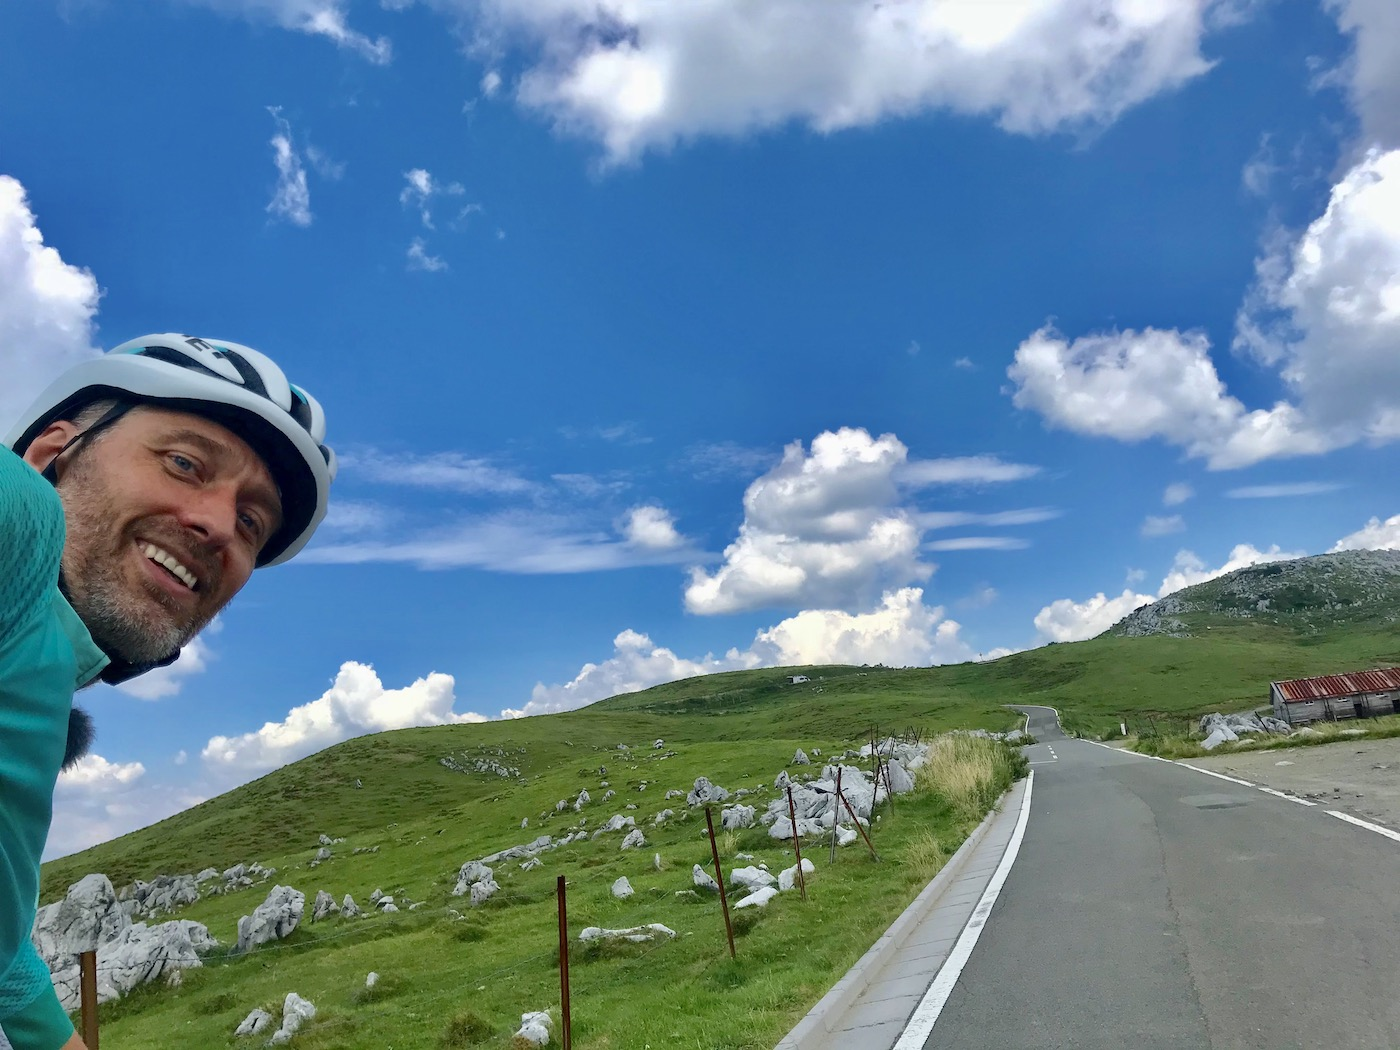 We ask an American cyclist about scenic cycling routes besides the Shimanami Kaido